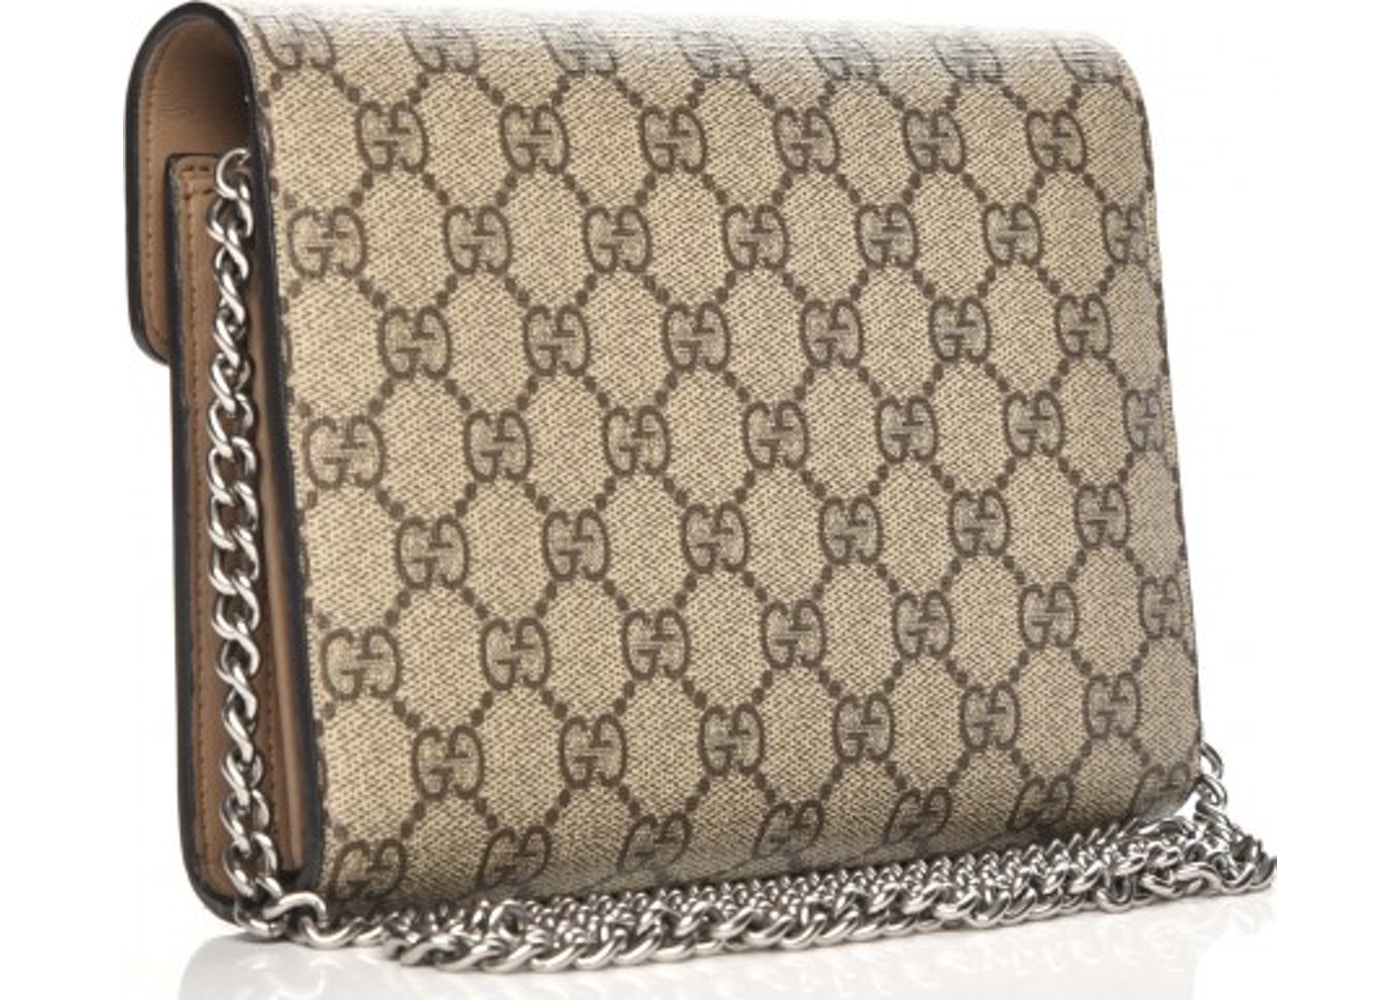 3bfb4494f527 Gucci Chain Wallet Dionysus Gg Supreme Beige Canvas Cross Body Bag